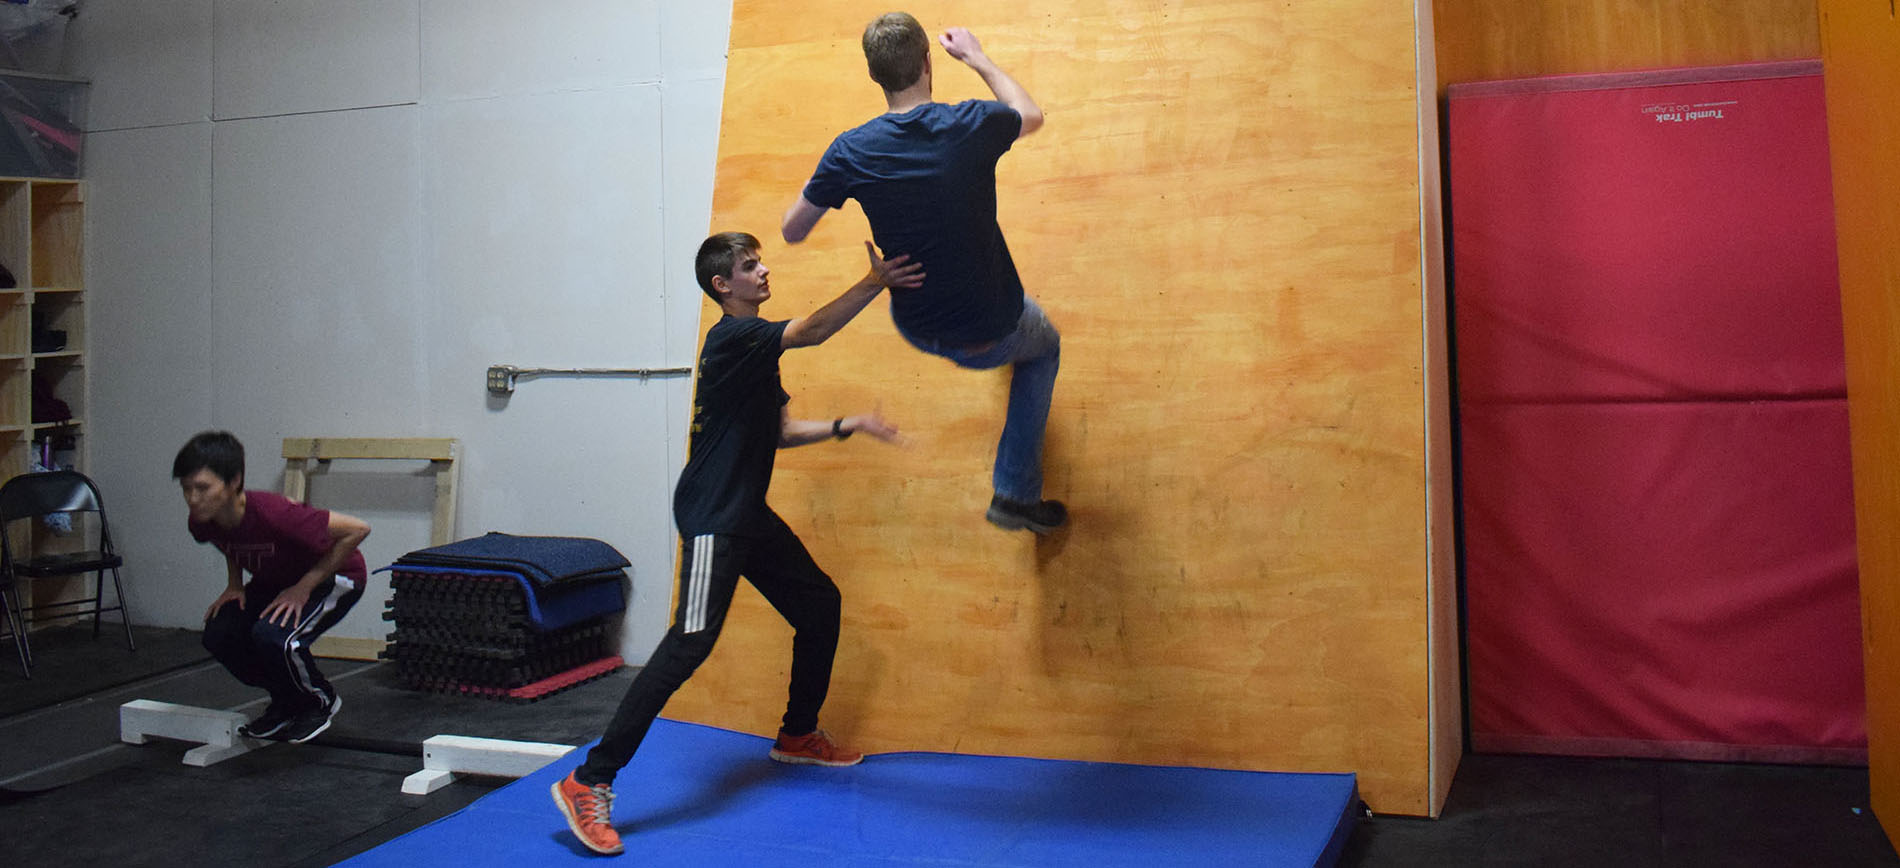 simeon helping Jacob with a wall flip Header